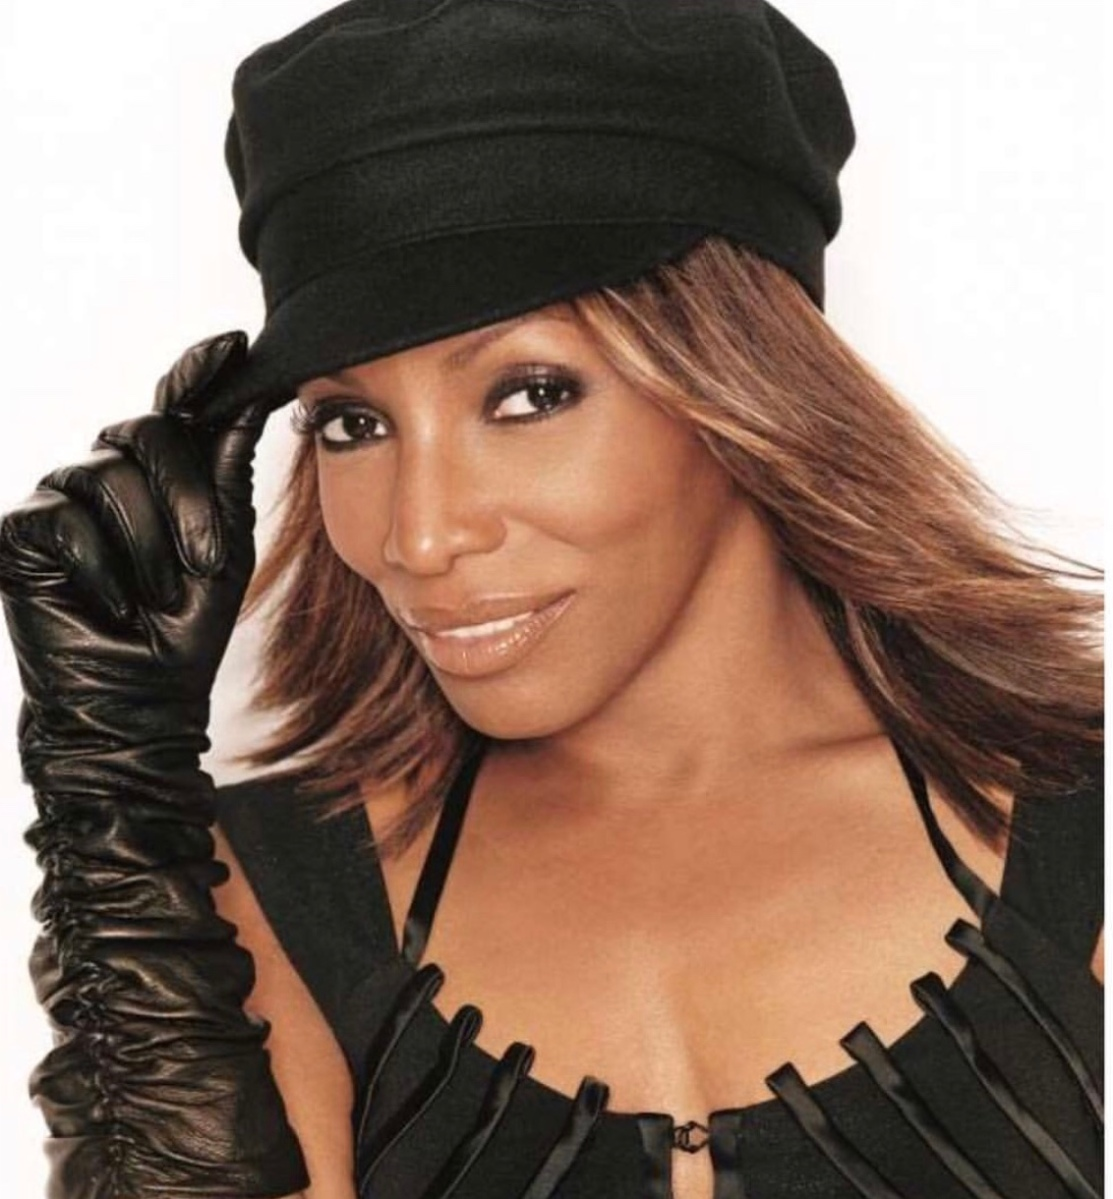 Interview: Kendra Bell Talks to Stephanie Mills About an Upcoming Concert with  El DeBarge and Stokley, Turning 60, Her Lasting Career and More!